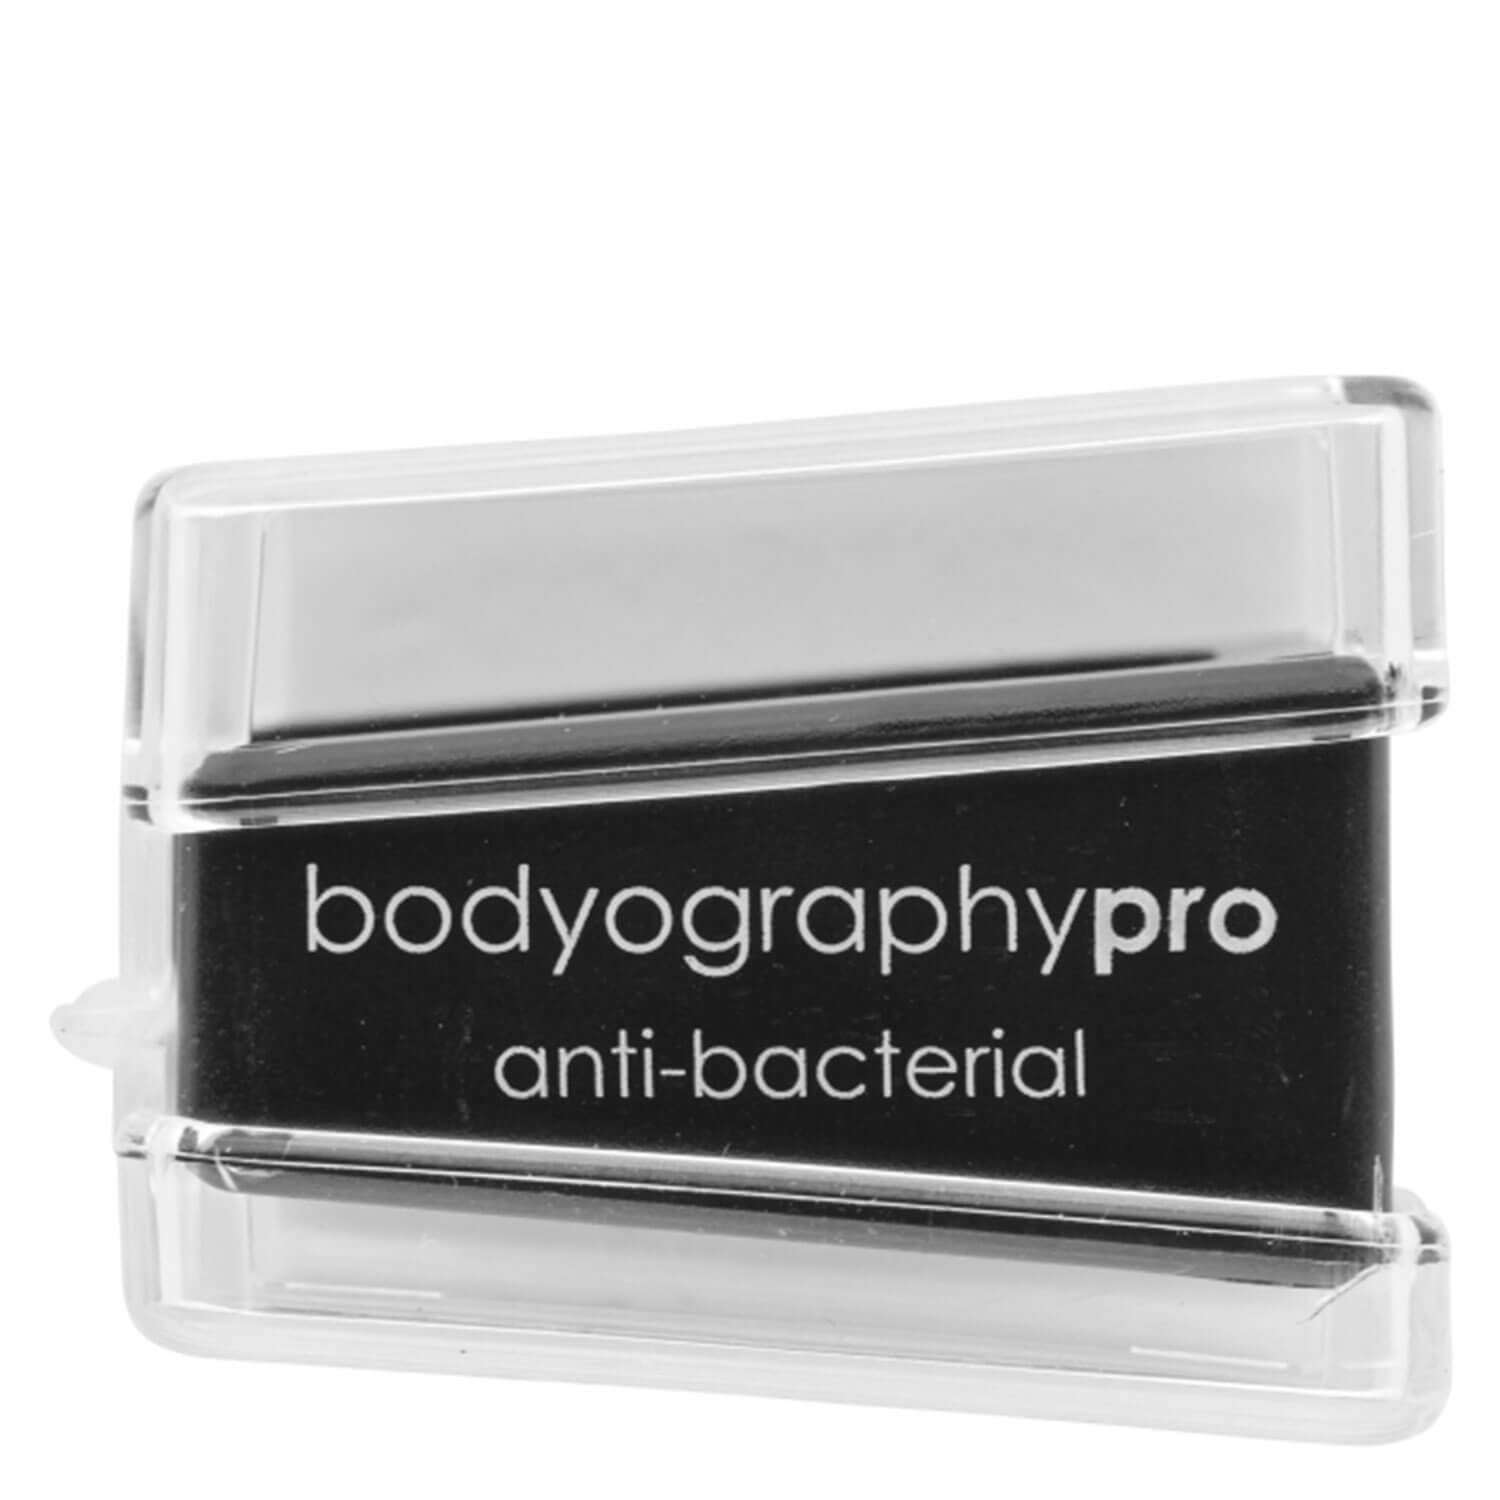 bodyography Tools - Anti-Bacterial Pencil Sharpener